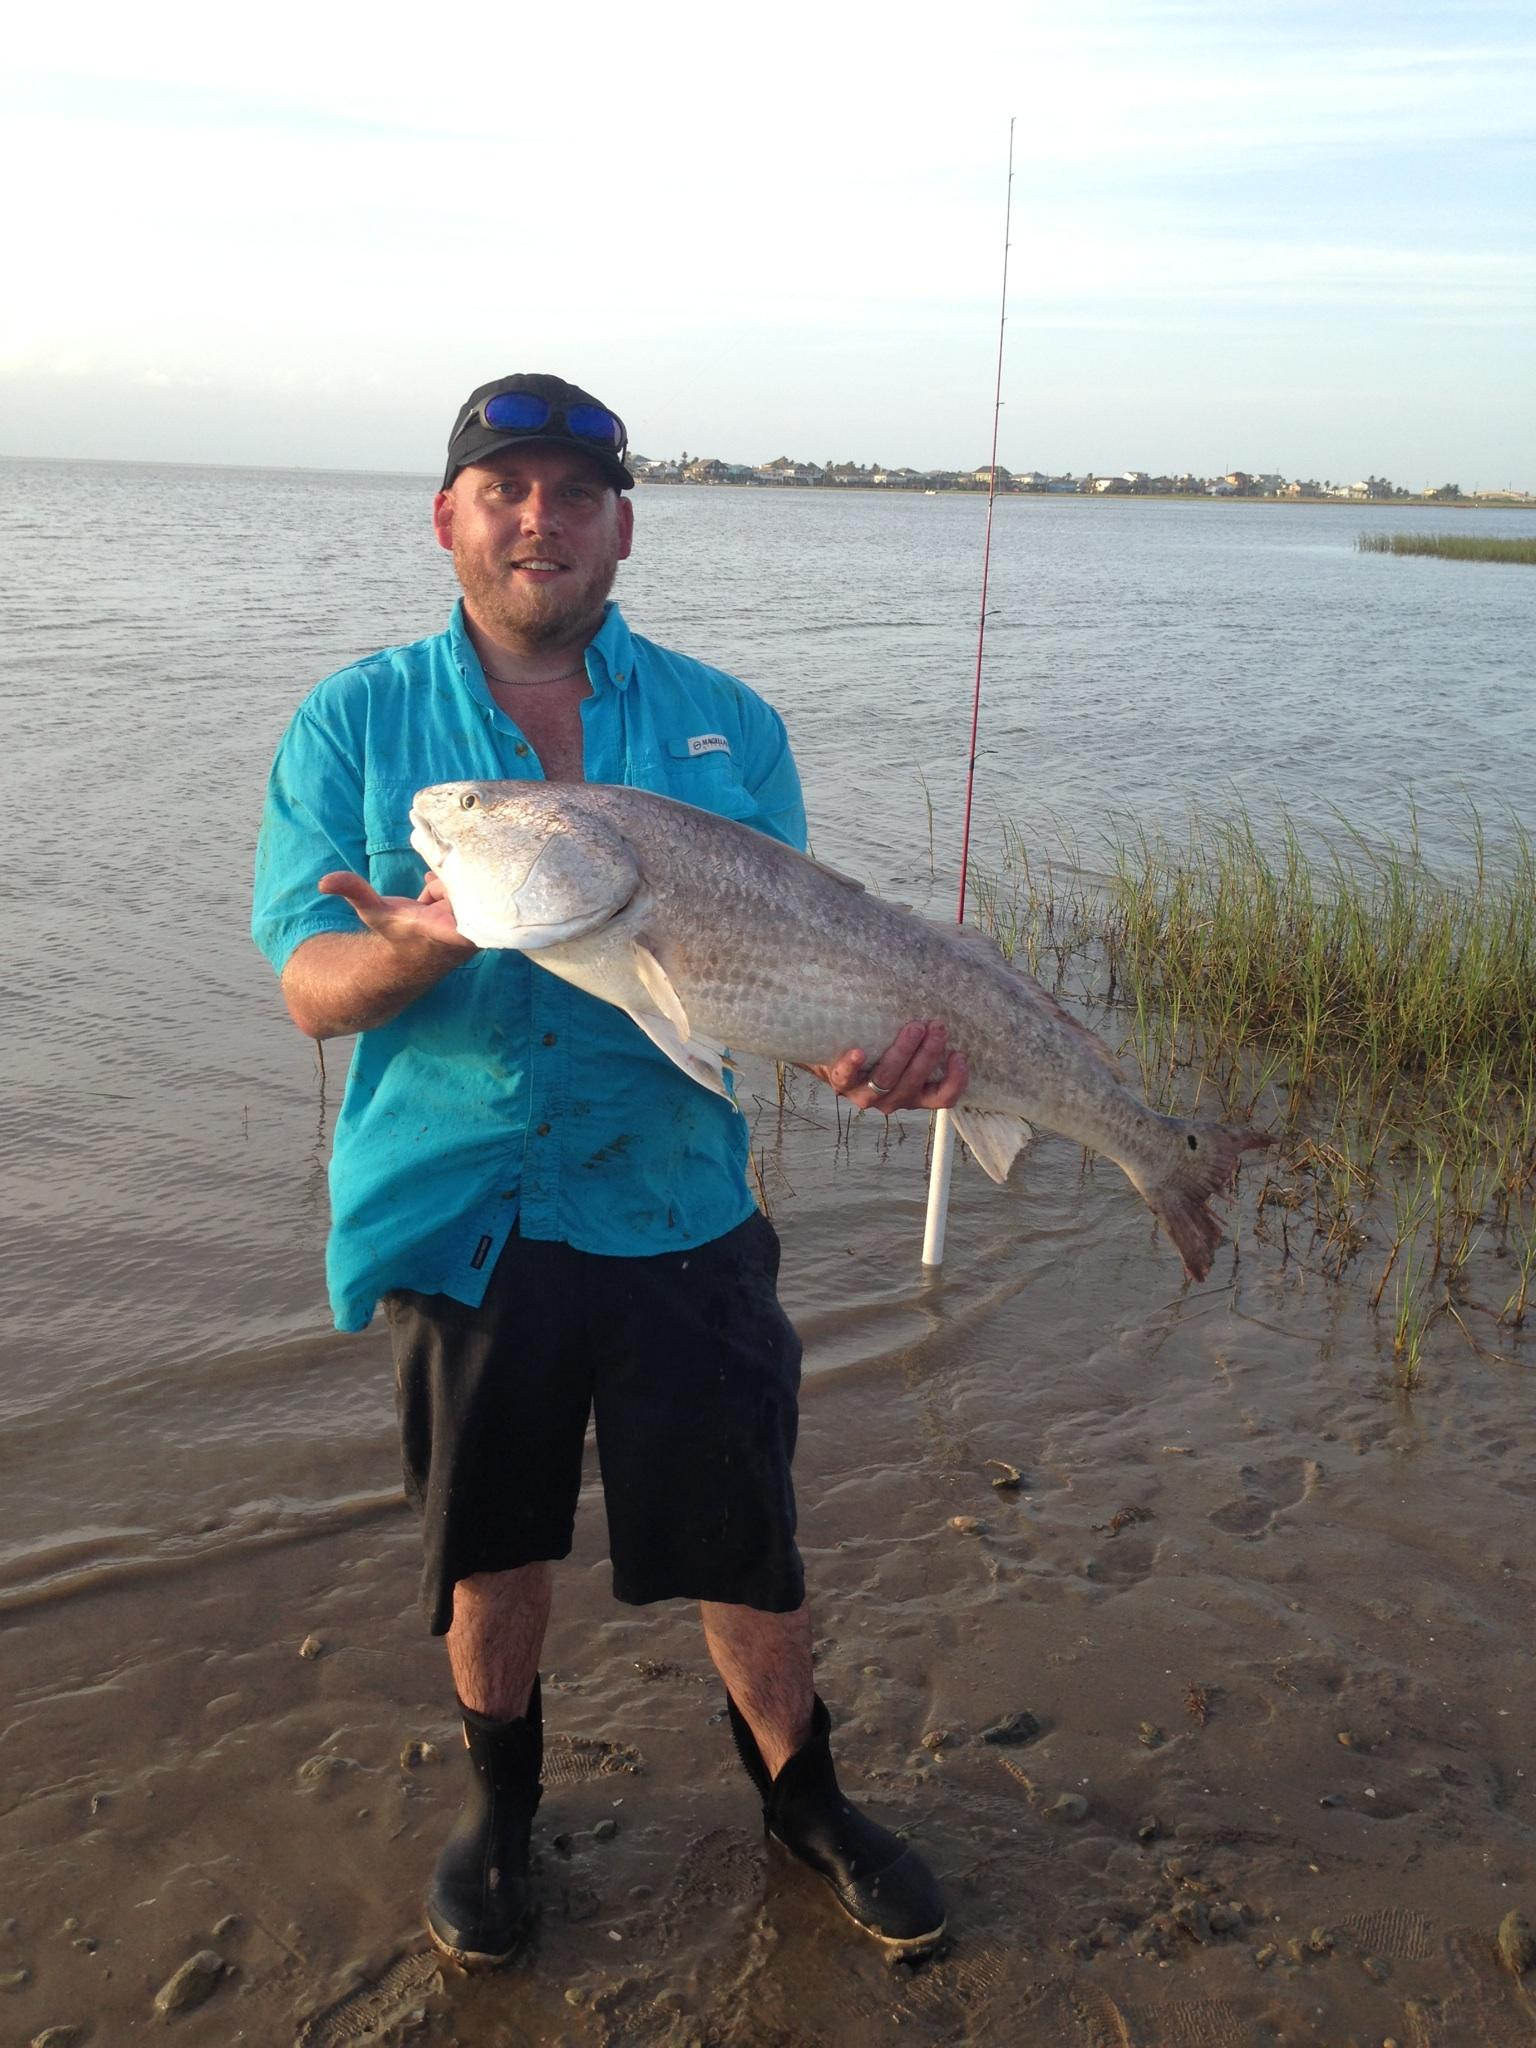 6.14.14 Red fish.jpeg